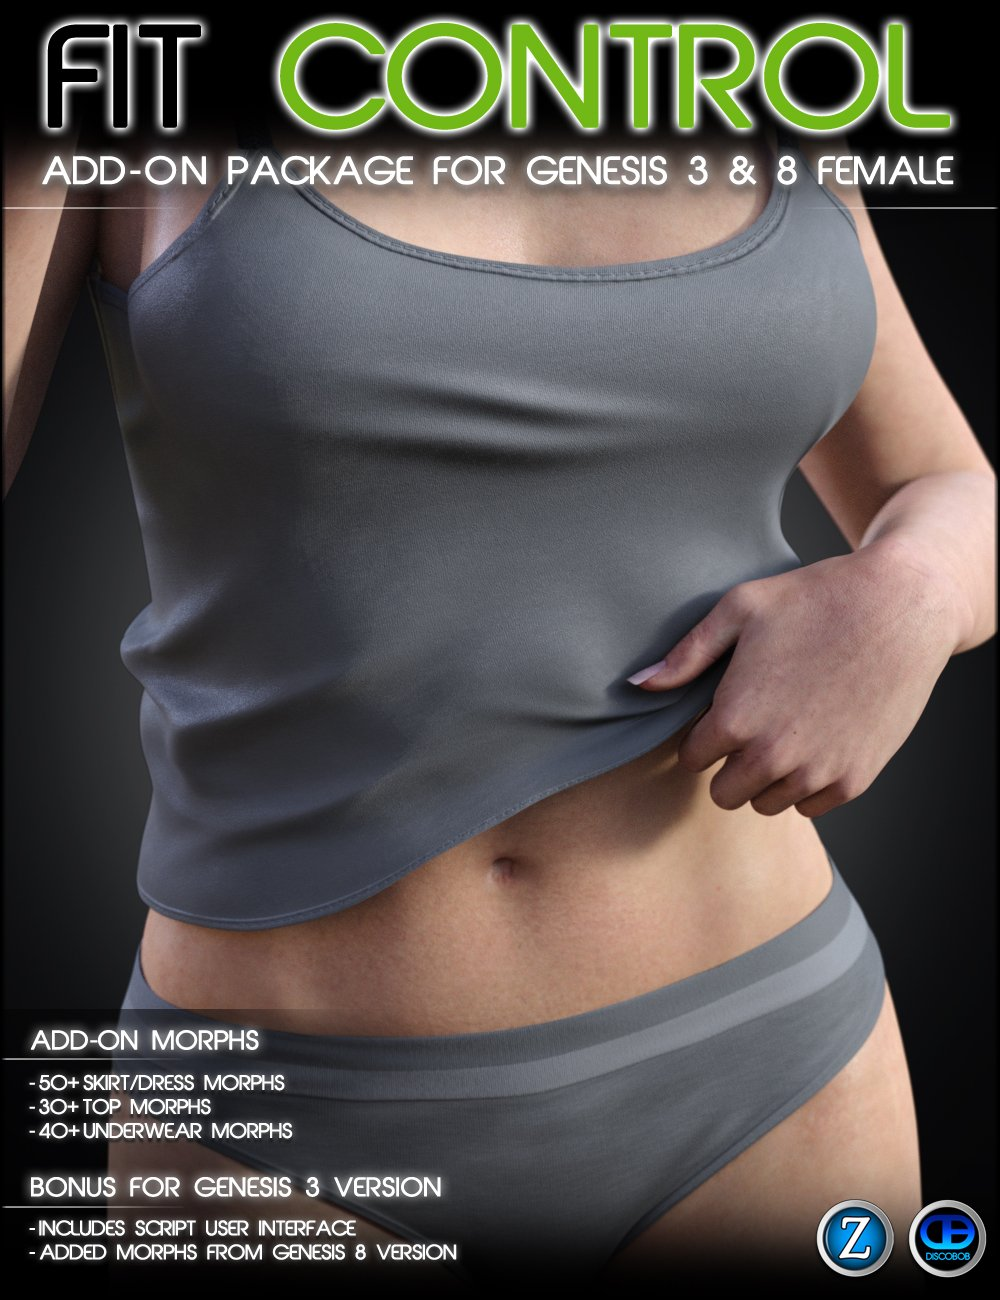 Fit Control Add-On for Genesis 3 & 8 Female by: Zev0Discobob, 3D Models by Daz 3D